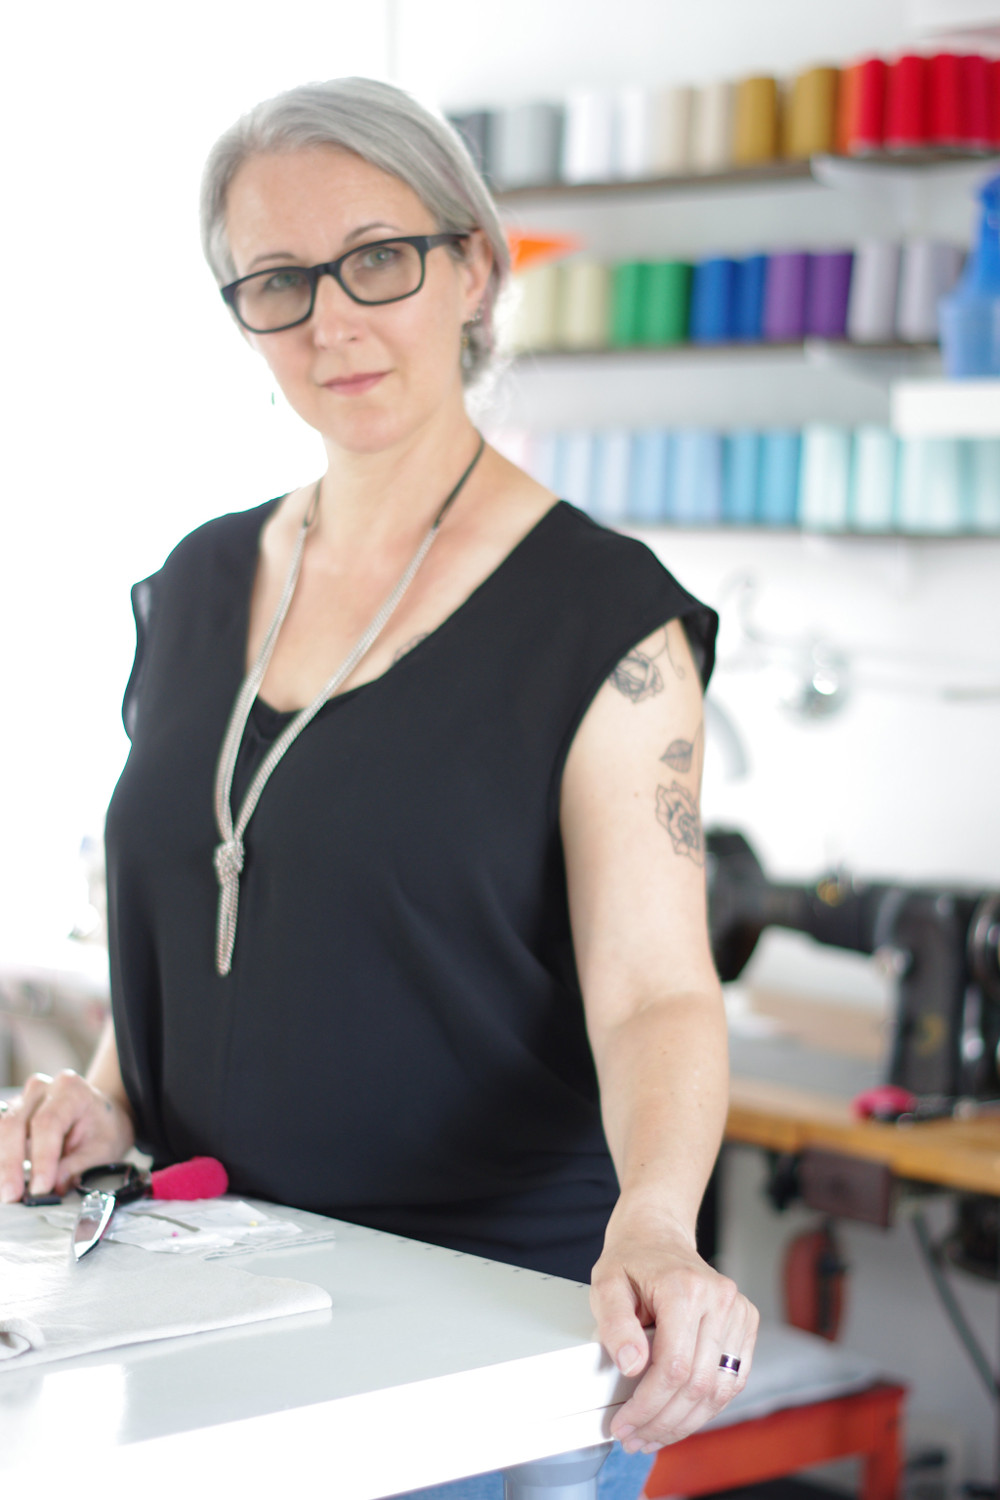 Catherine Soucy - Maker at The Makers Crate Company